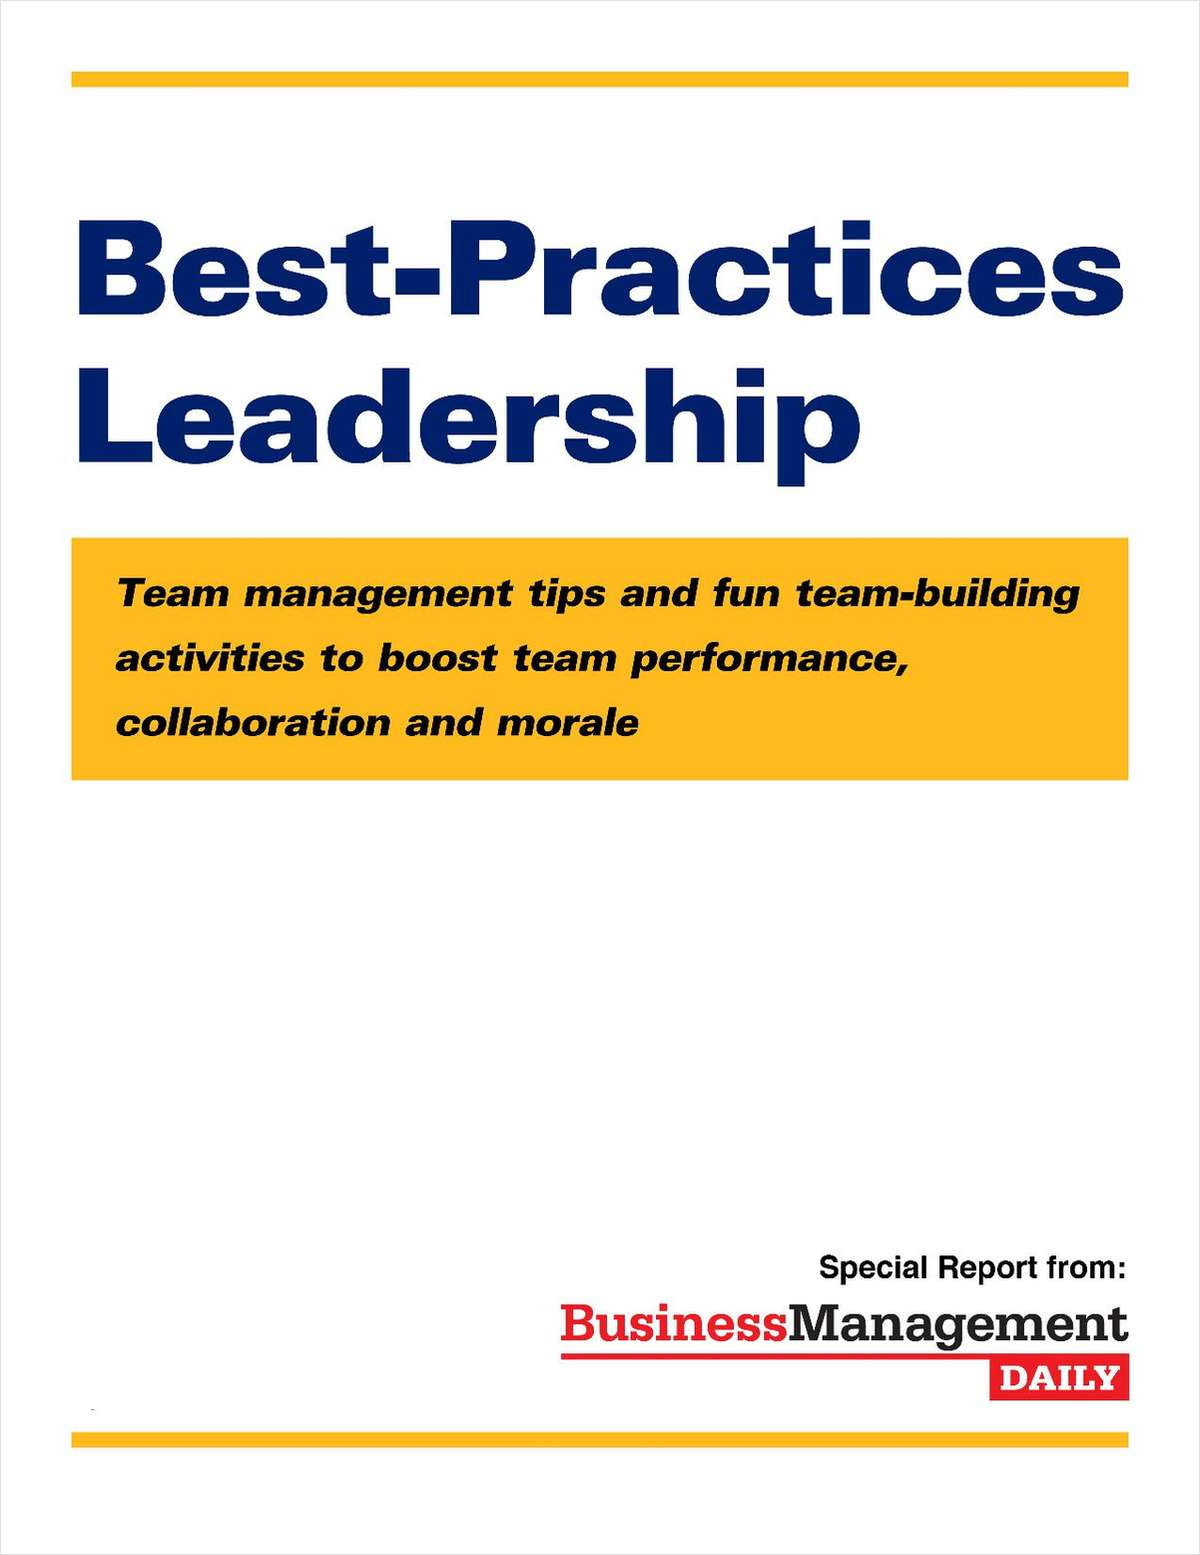 Best-Practices Leadership: Team Management Tips